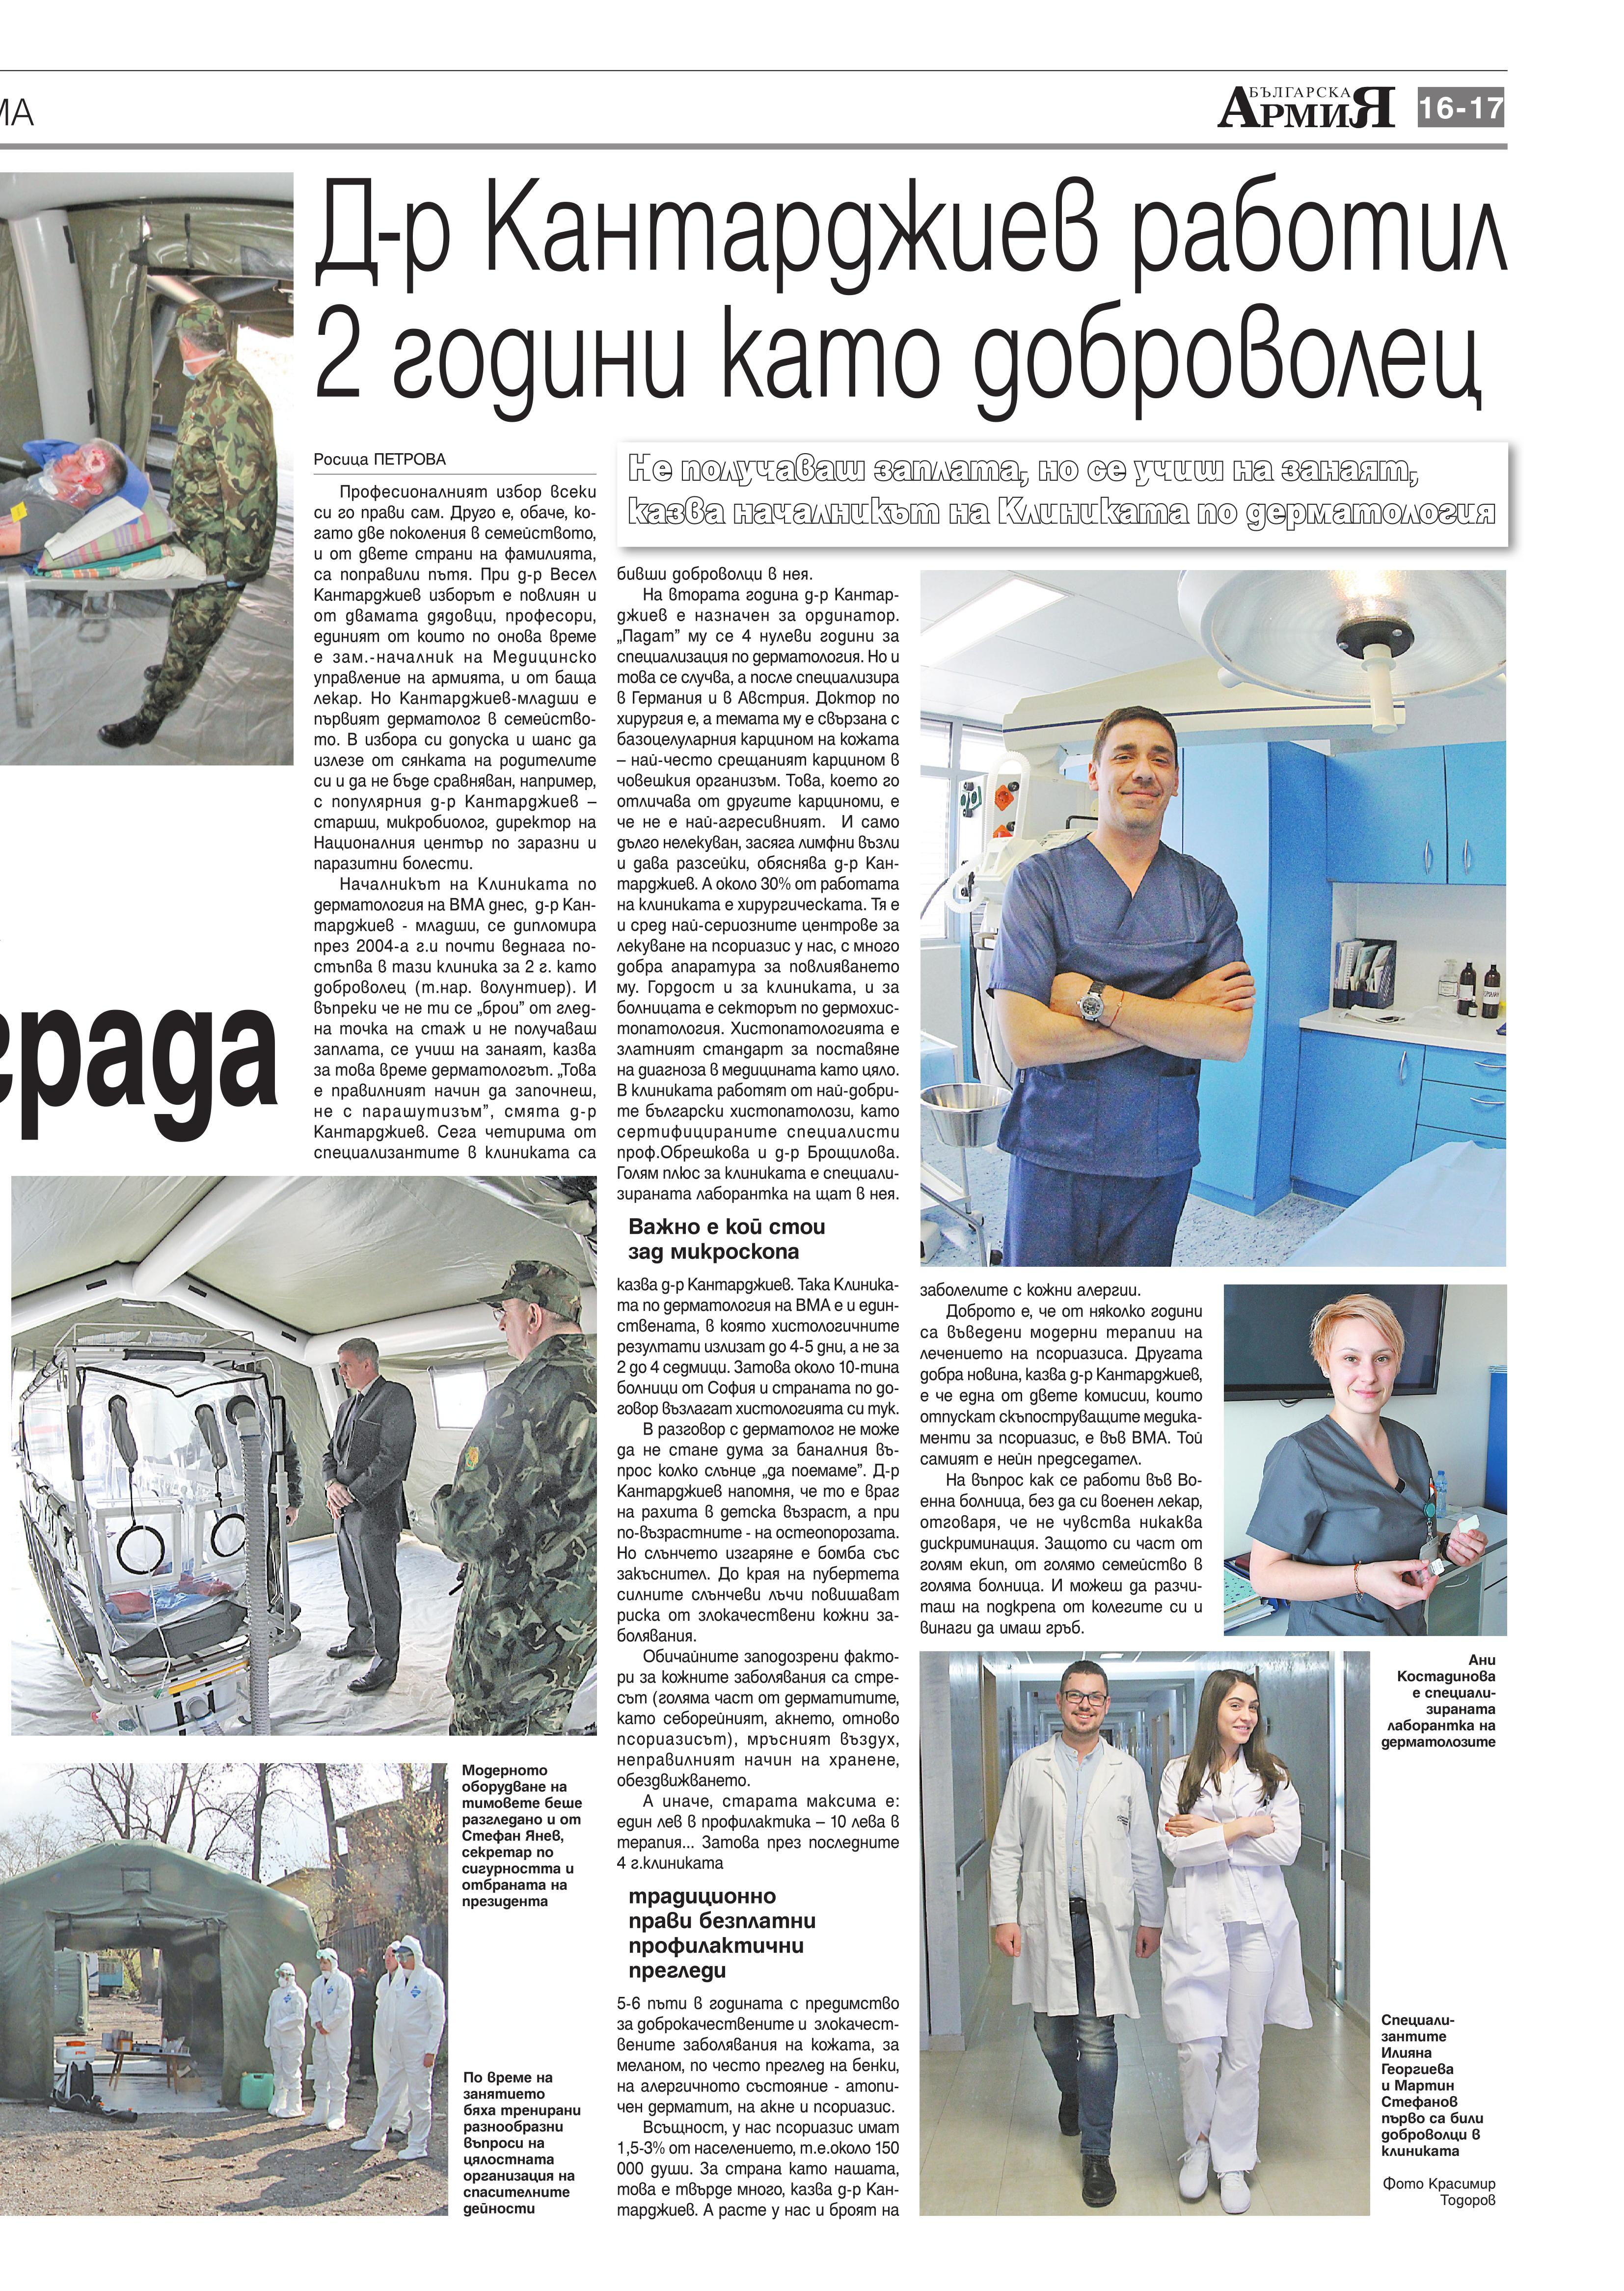 https://armymedia.bg/wp-content/uploads/2015/06/17.page1_-90.jpg